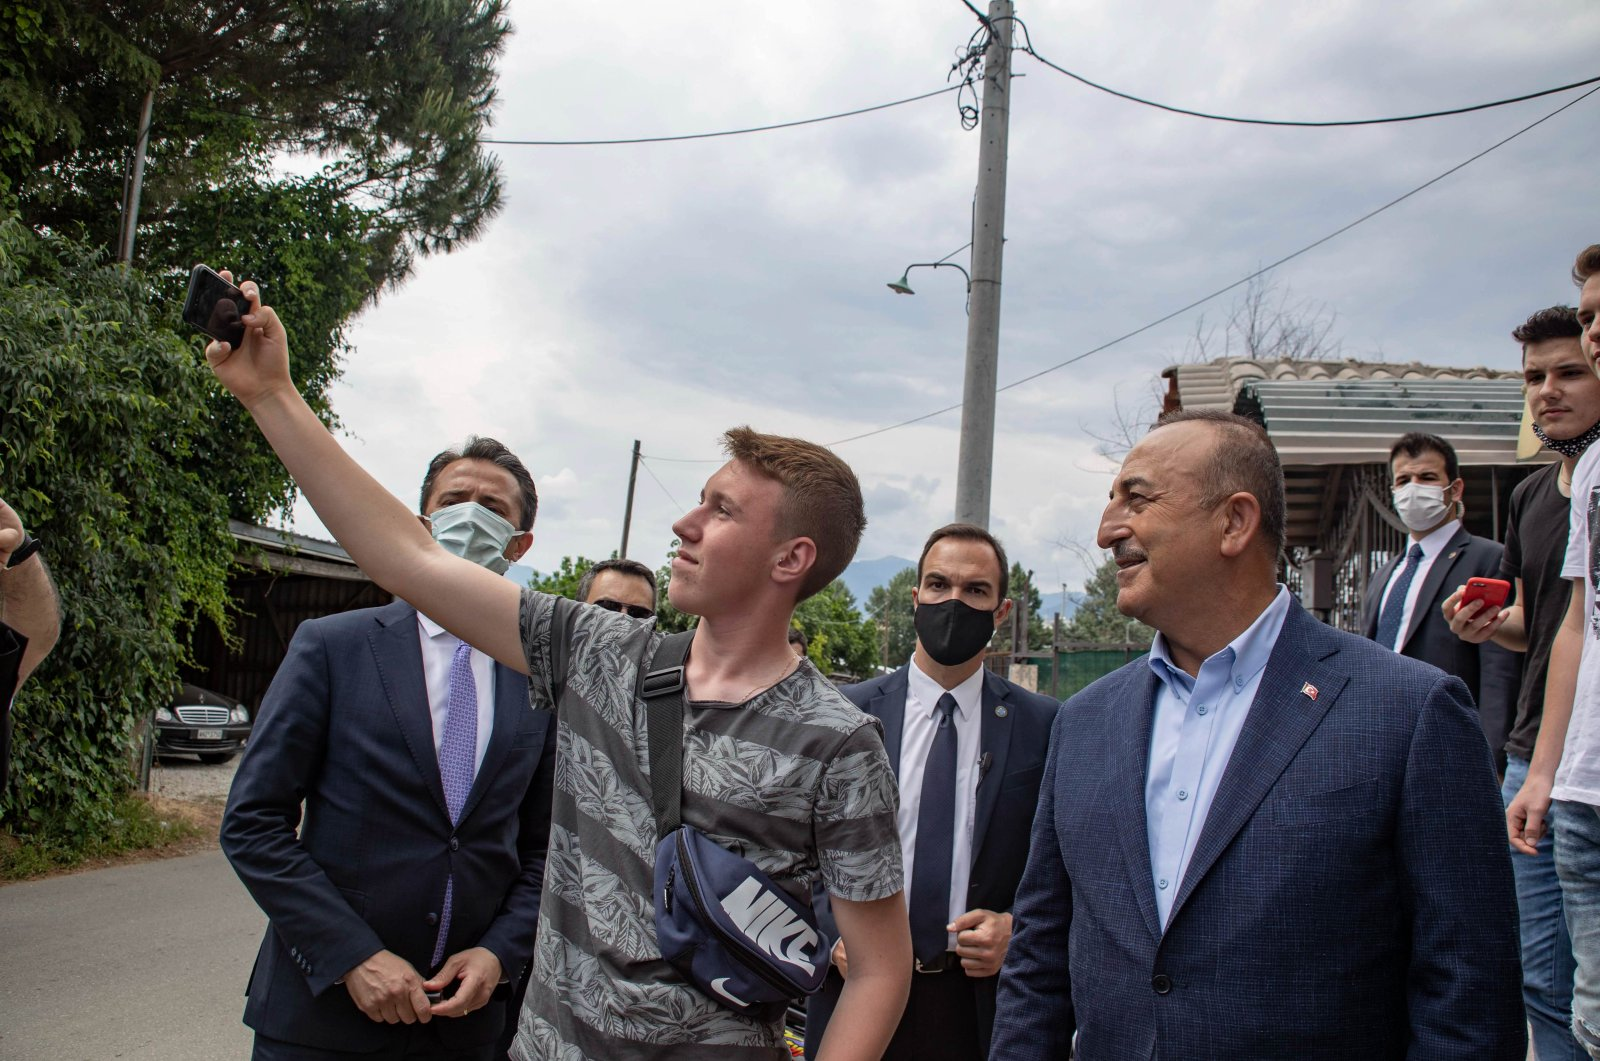 Foreign Minister Mevlüt Çavuşoğlu (R) pauses for a selfie during his official visit to Komotini (Gümülcine), Greece, May 30, 2021. (Photo by Getty Images)